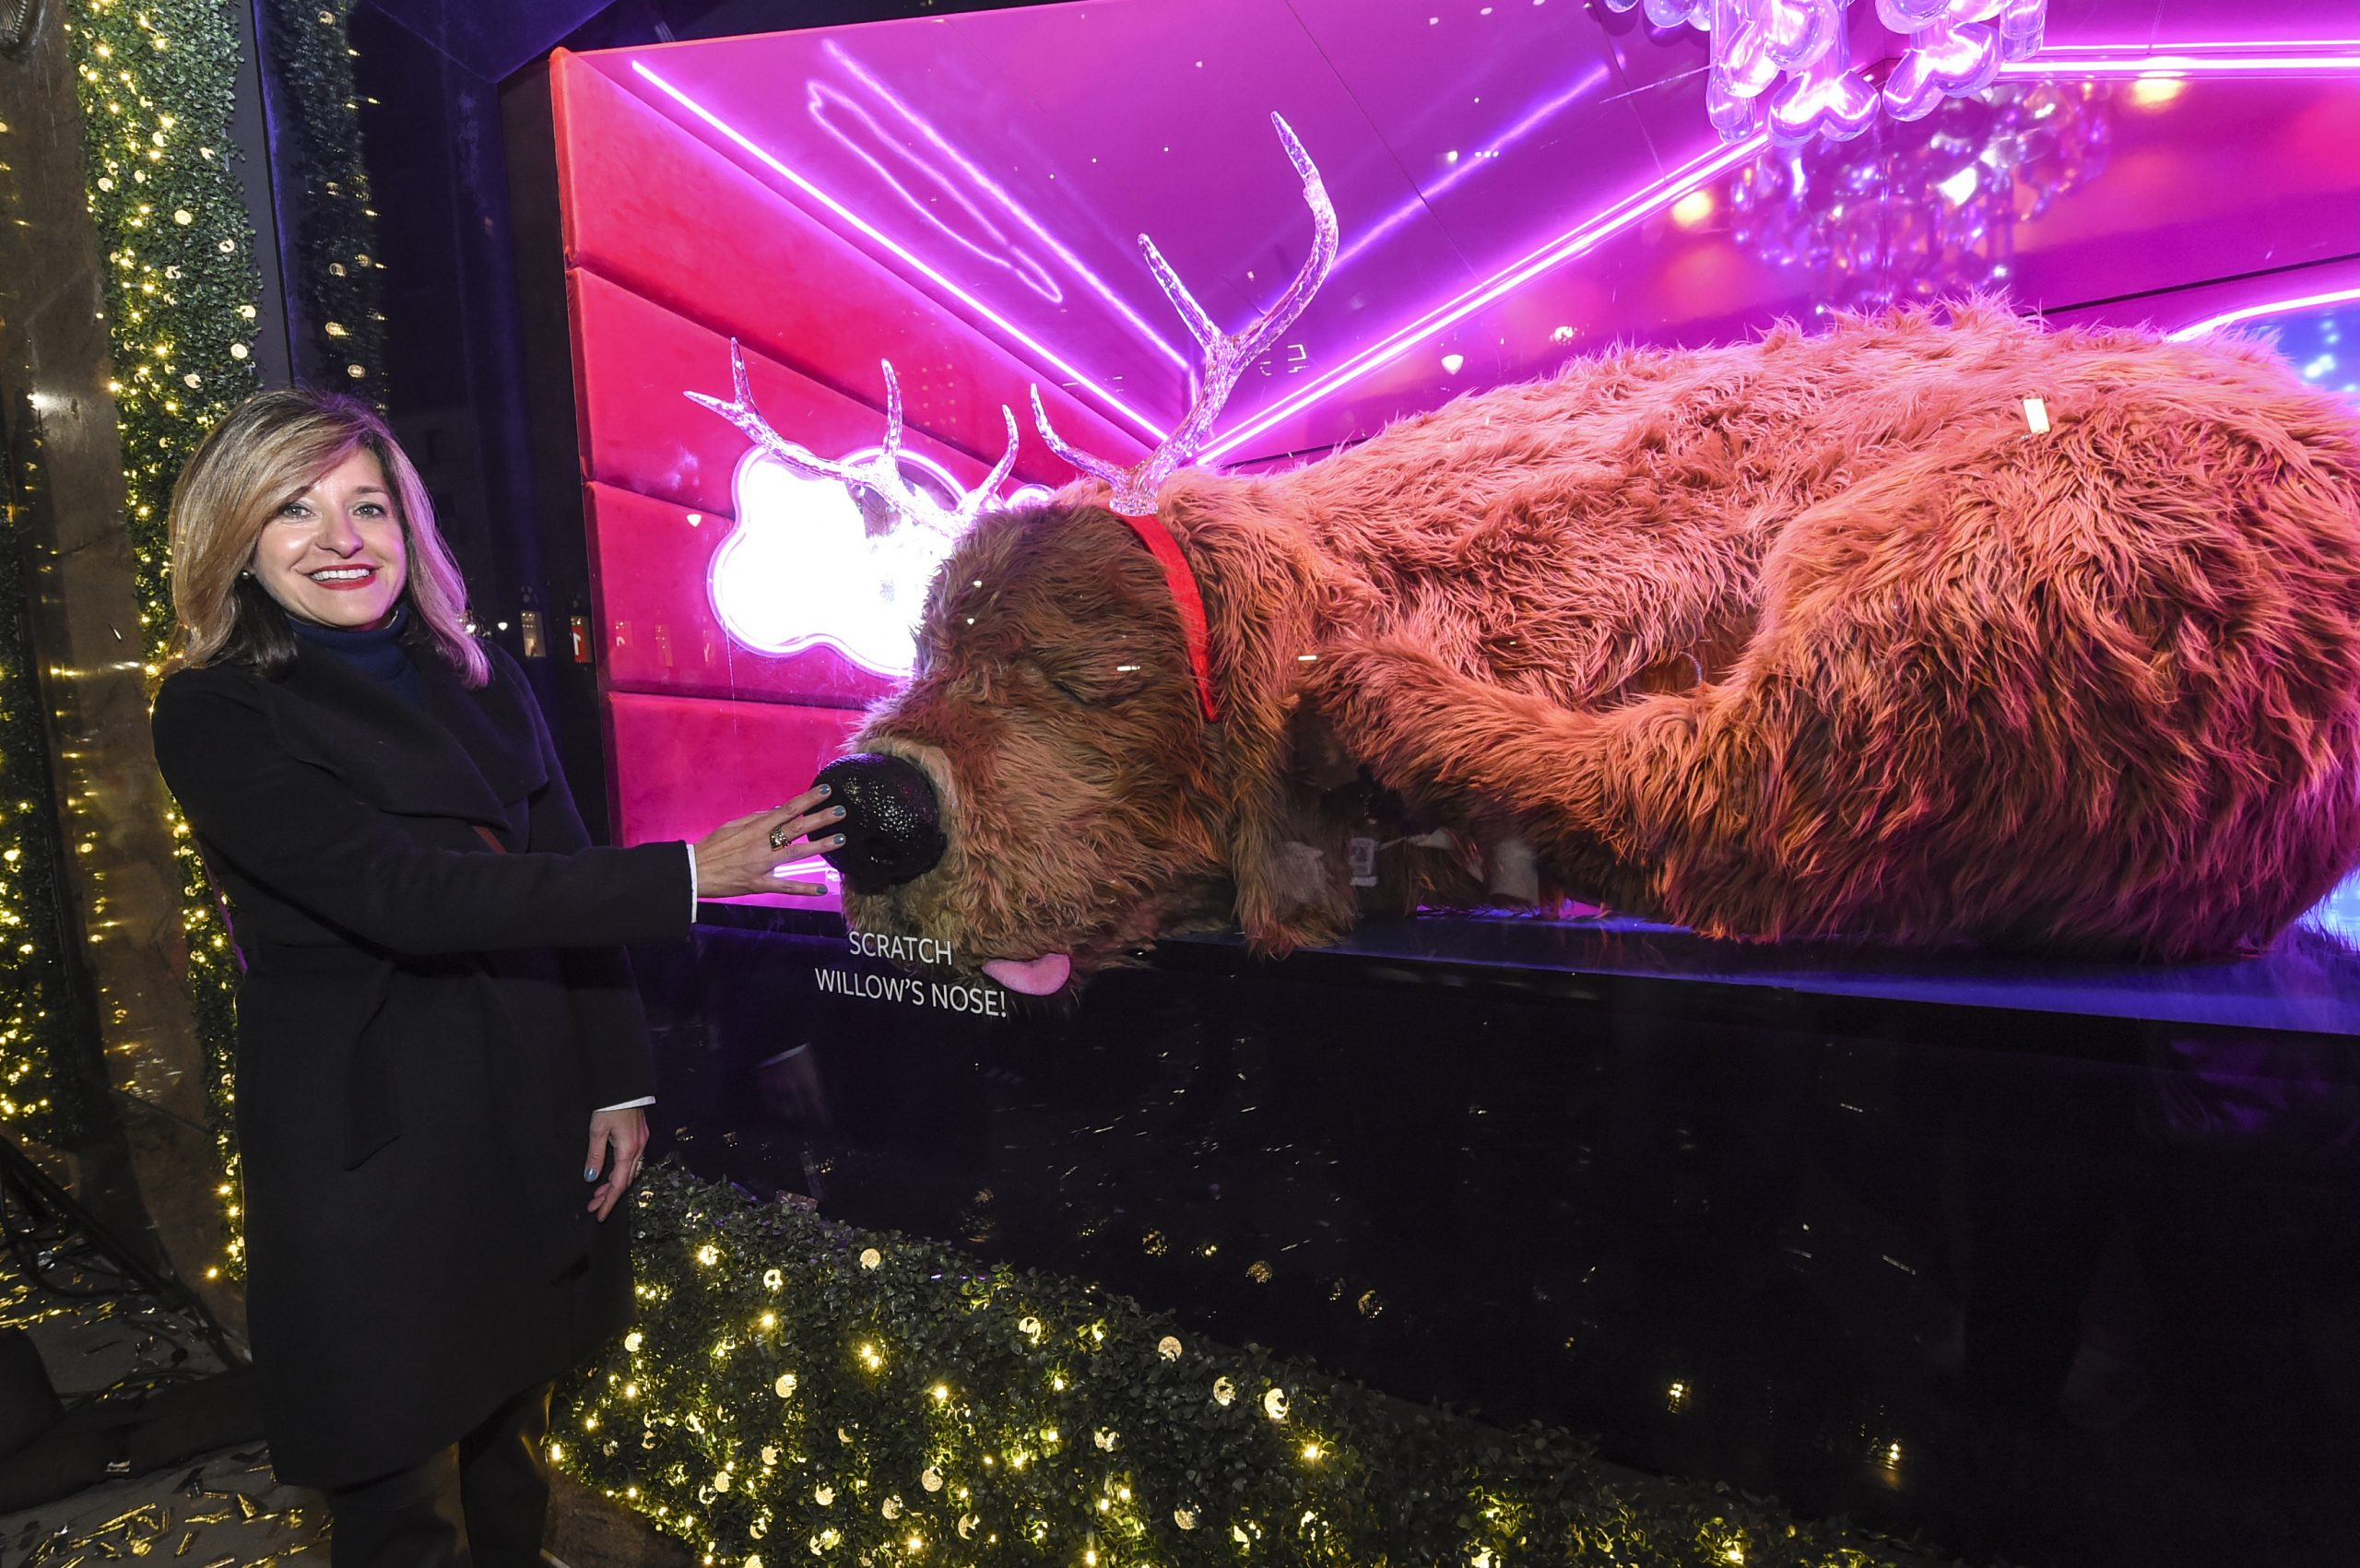 Woman patting animatronic dog at Macy's holiday windows.